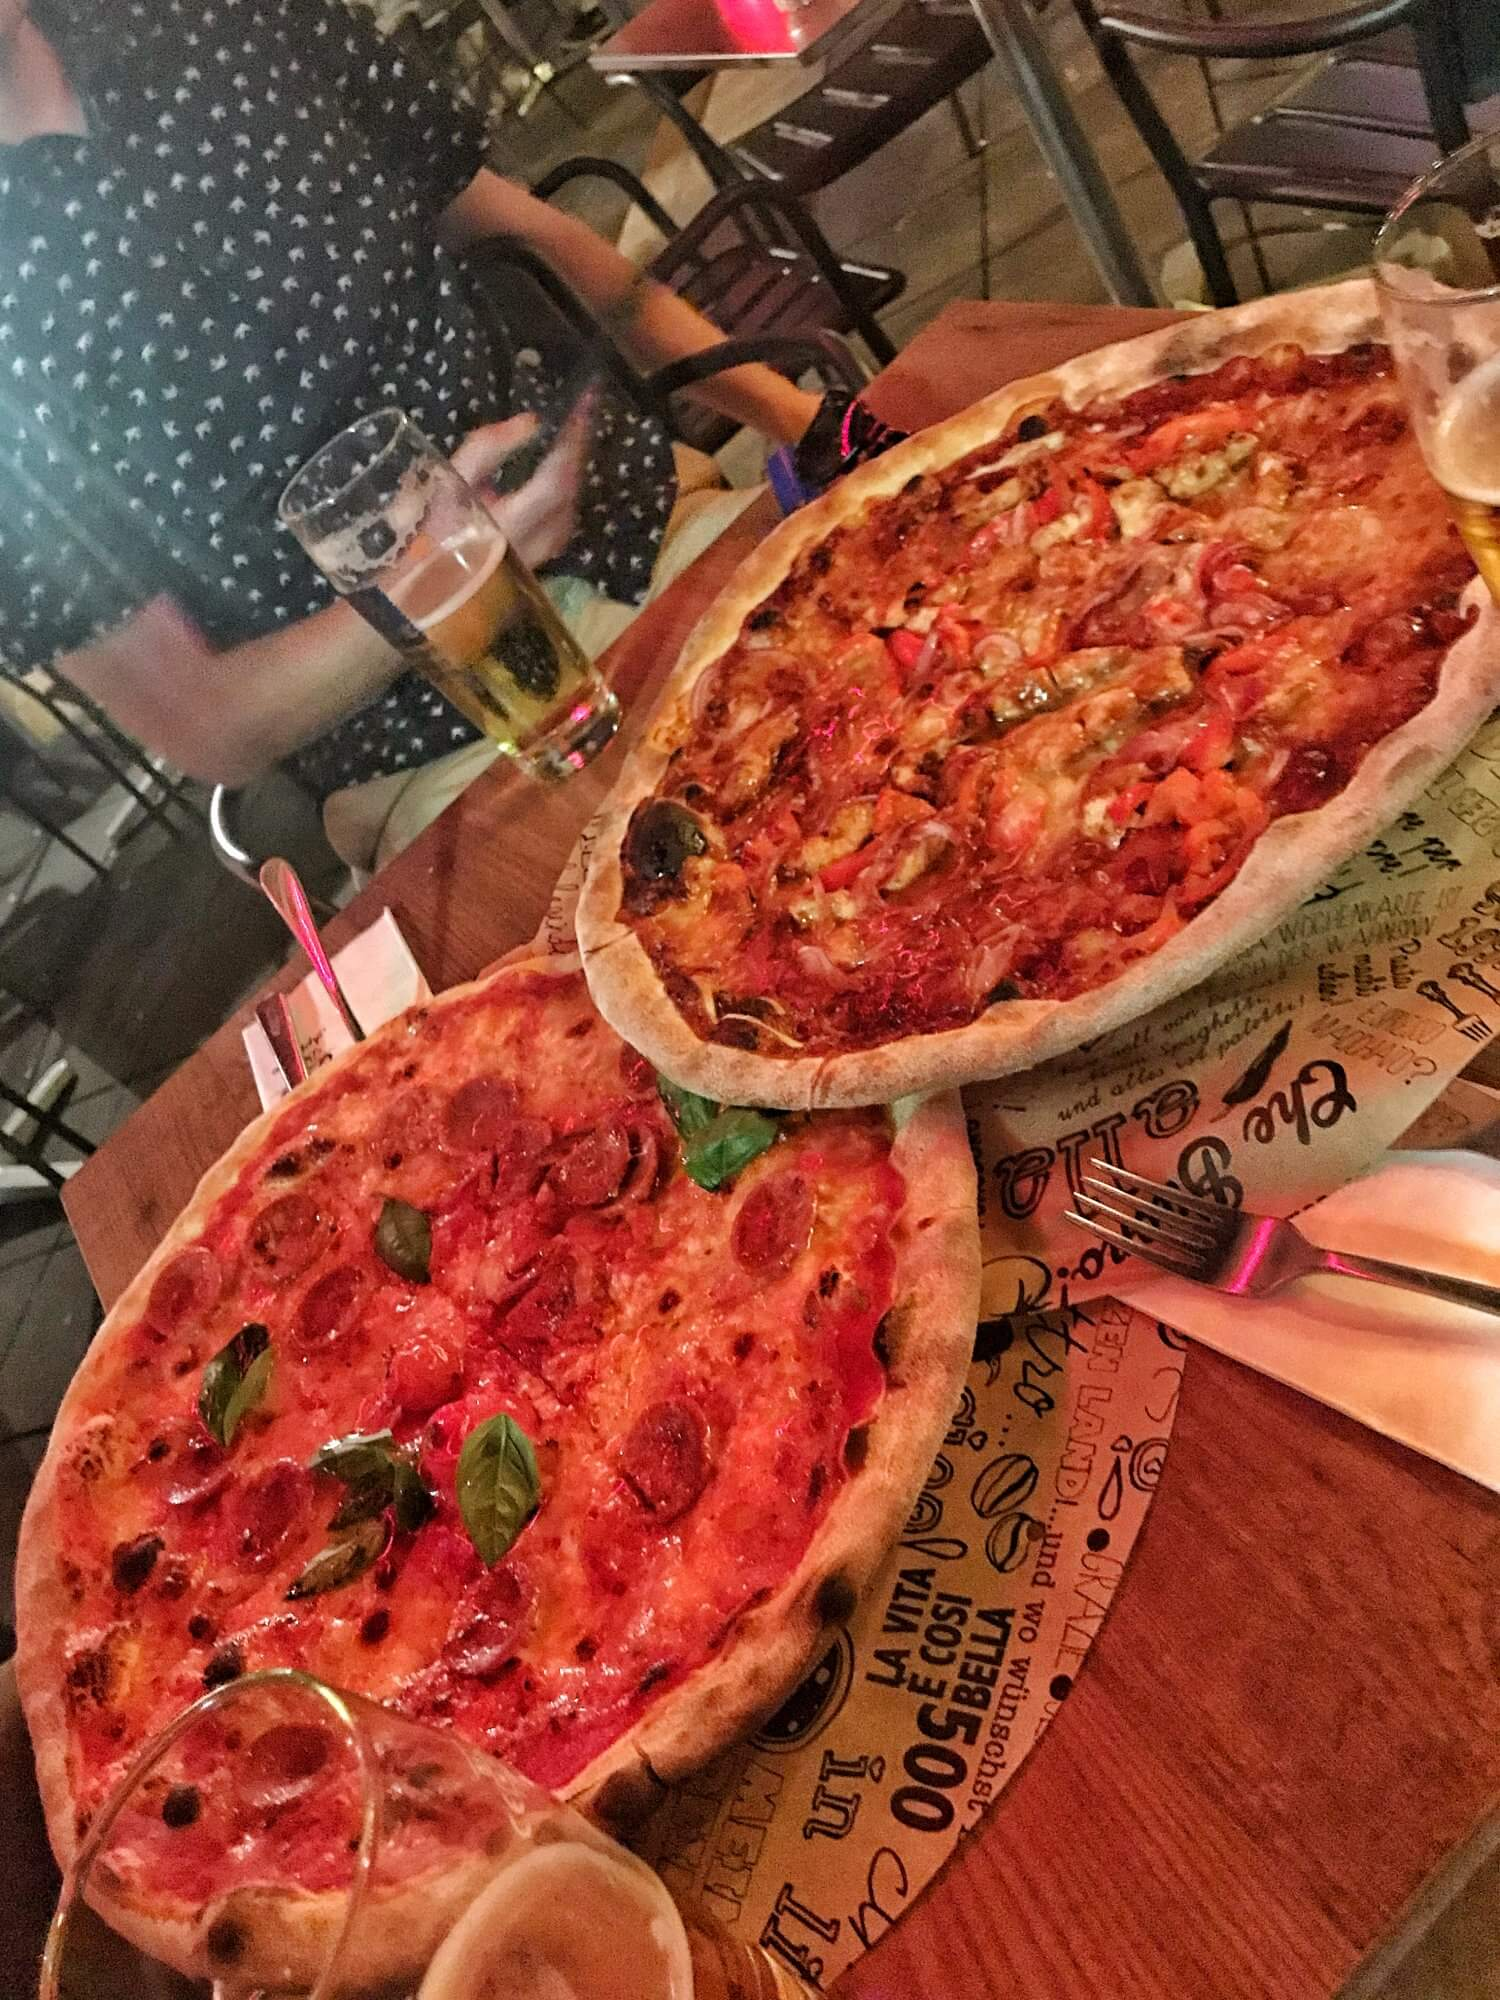 Giant pizzas at L'Osteria